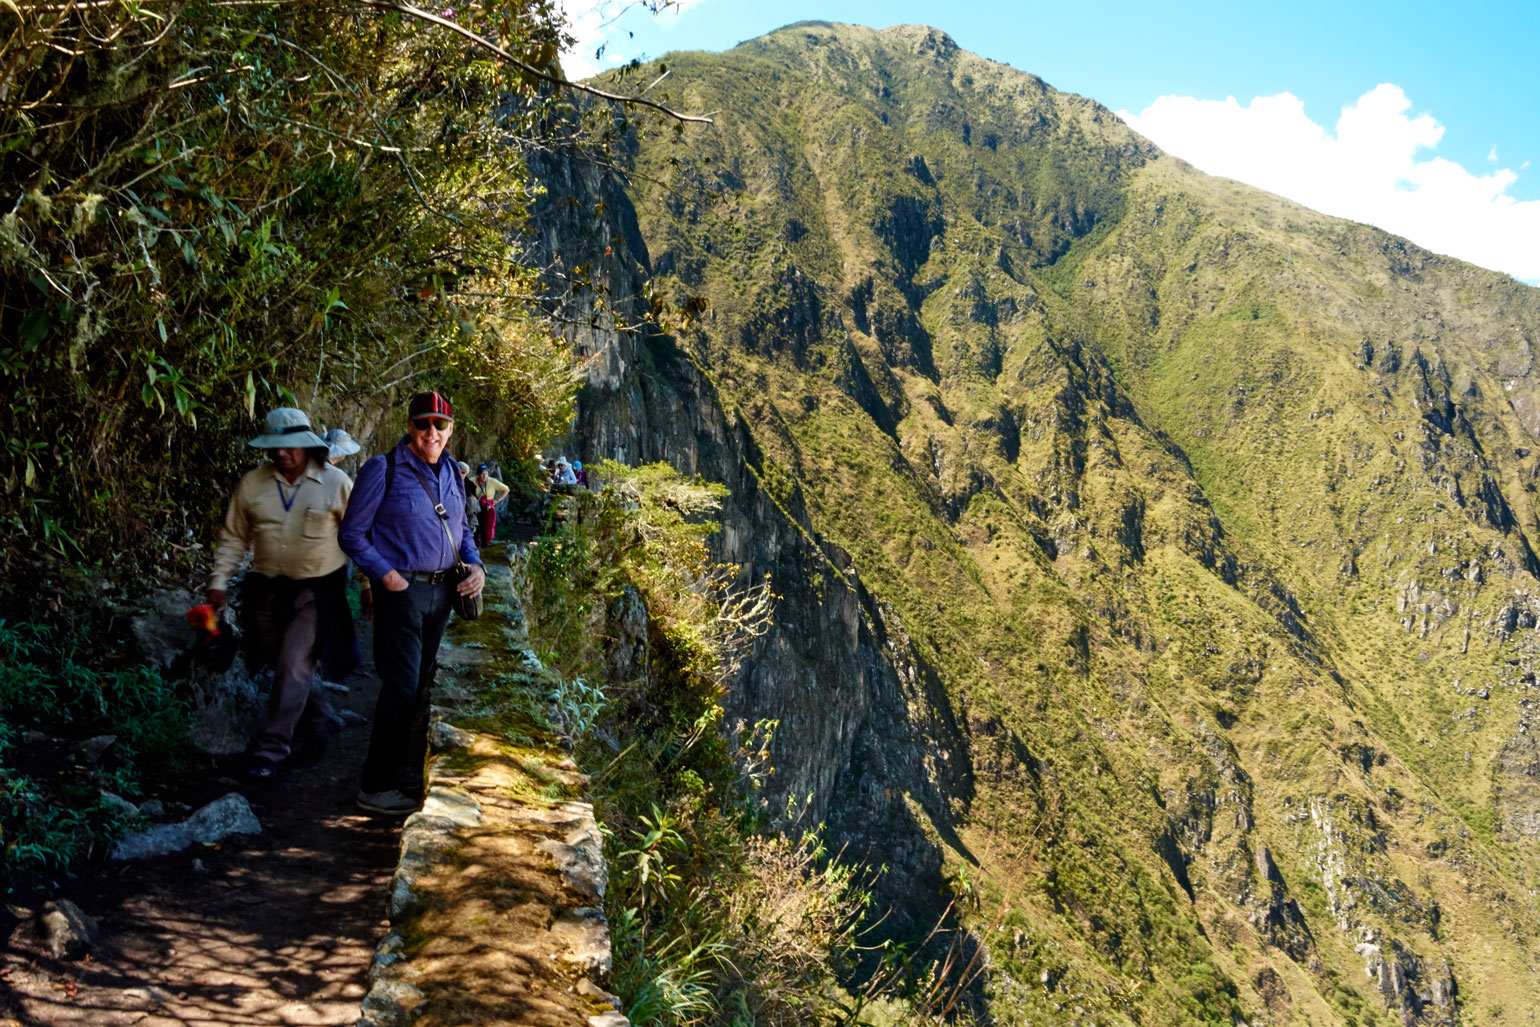 Heading to the Inca Bridge